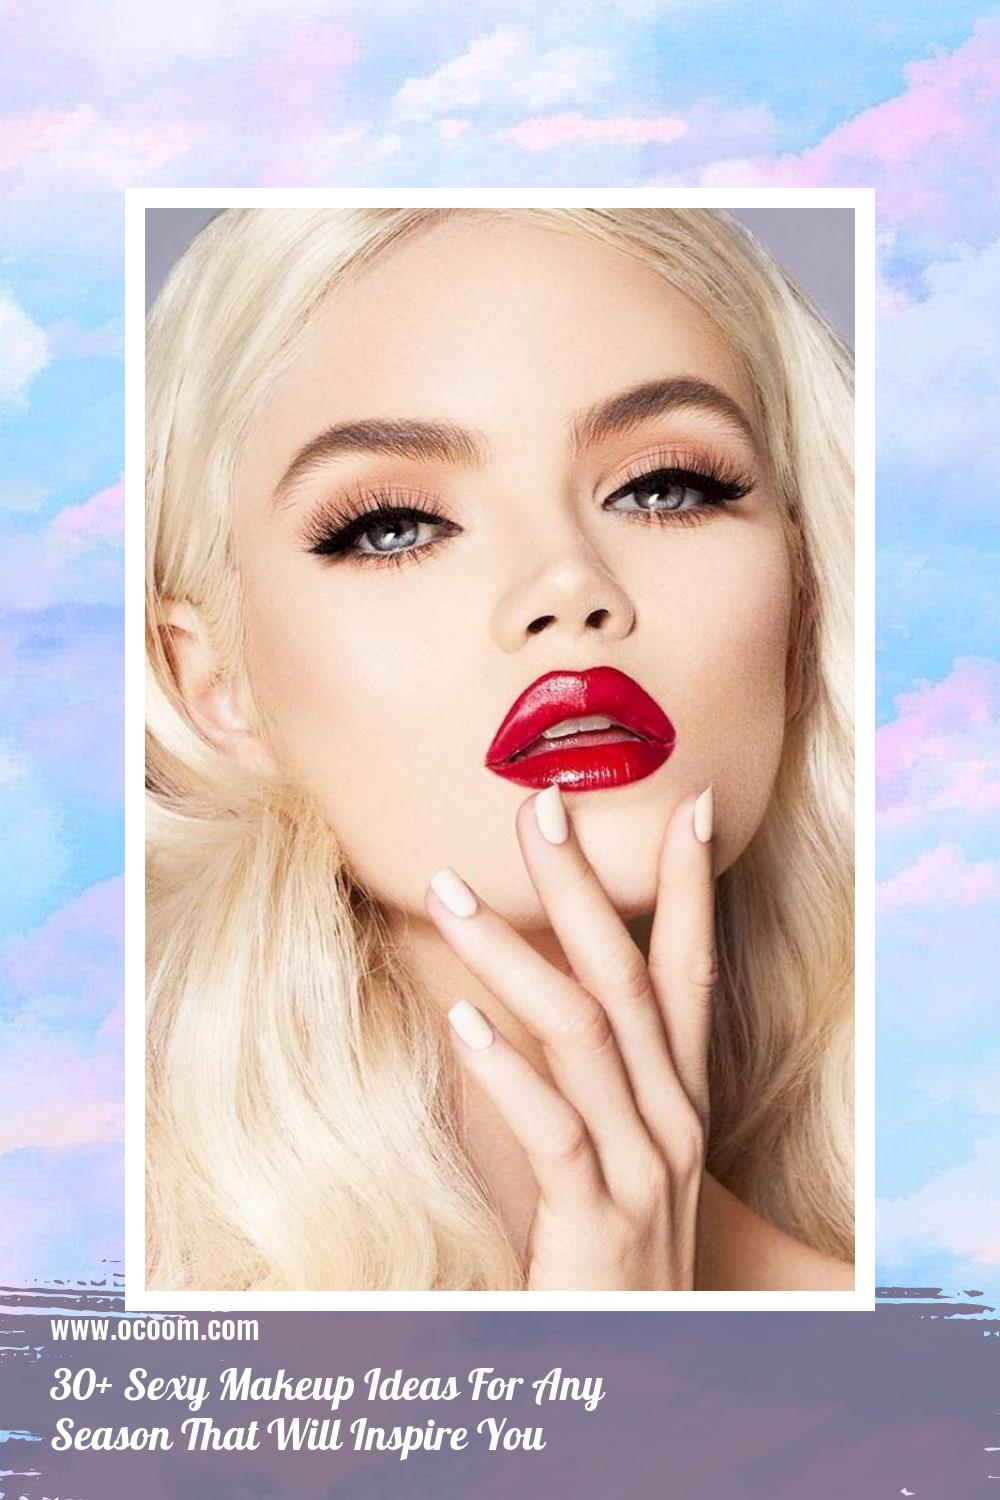 30+ Sexy Makeup Ideas For Any Season That Will Inspire You 33